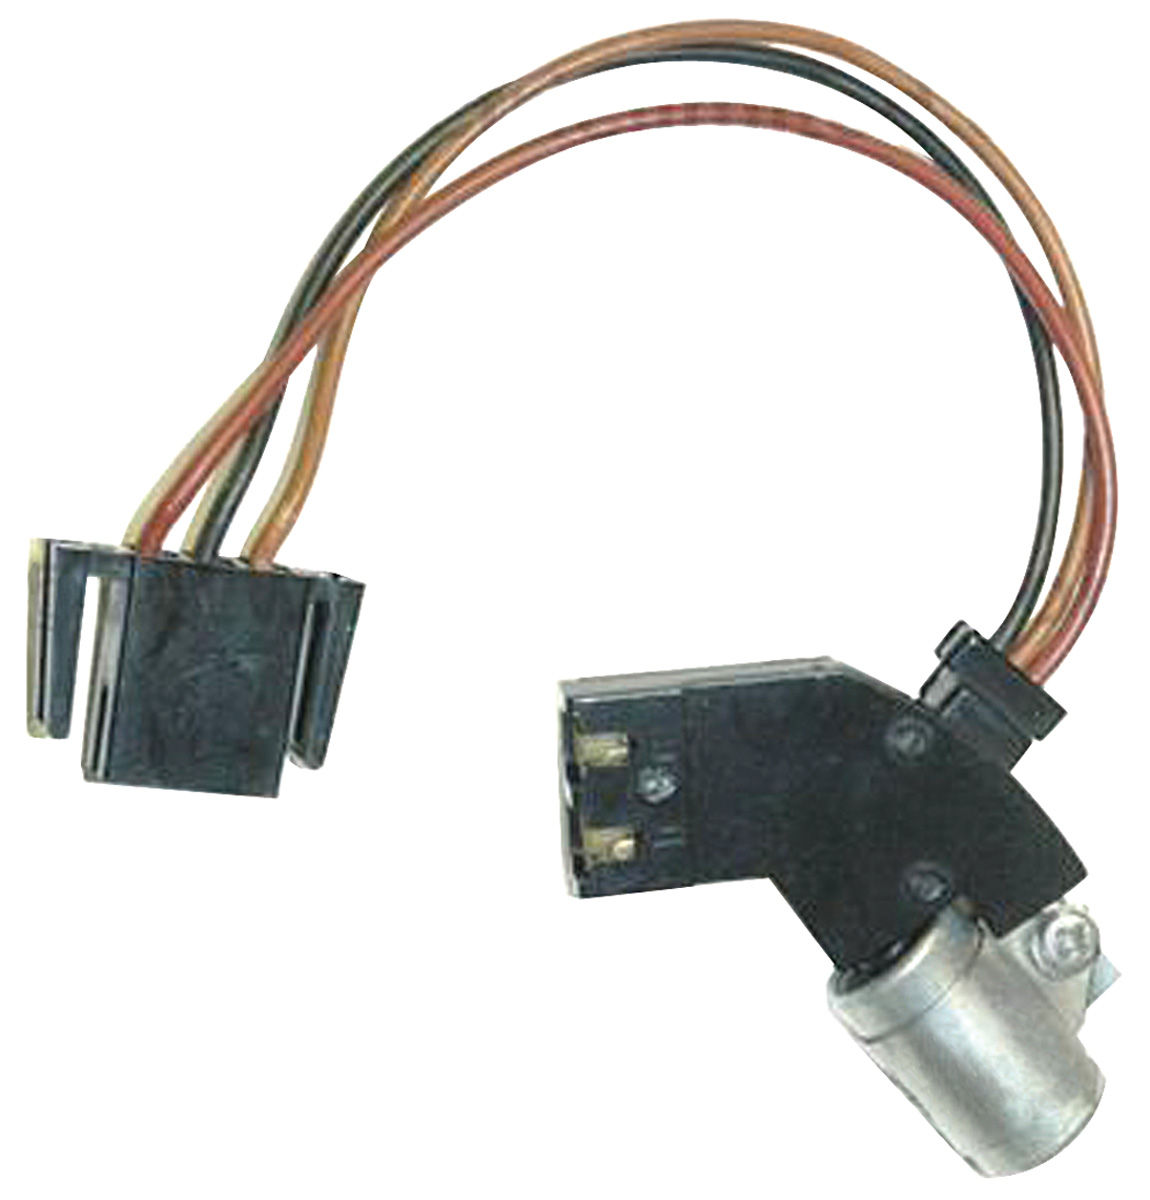 Hei Coil Wiring 77 Trusted Diagrams 427 Gm Lectric Limited 1975 Chevelle Ignition Module To Harness 4 3 Amc